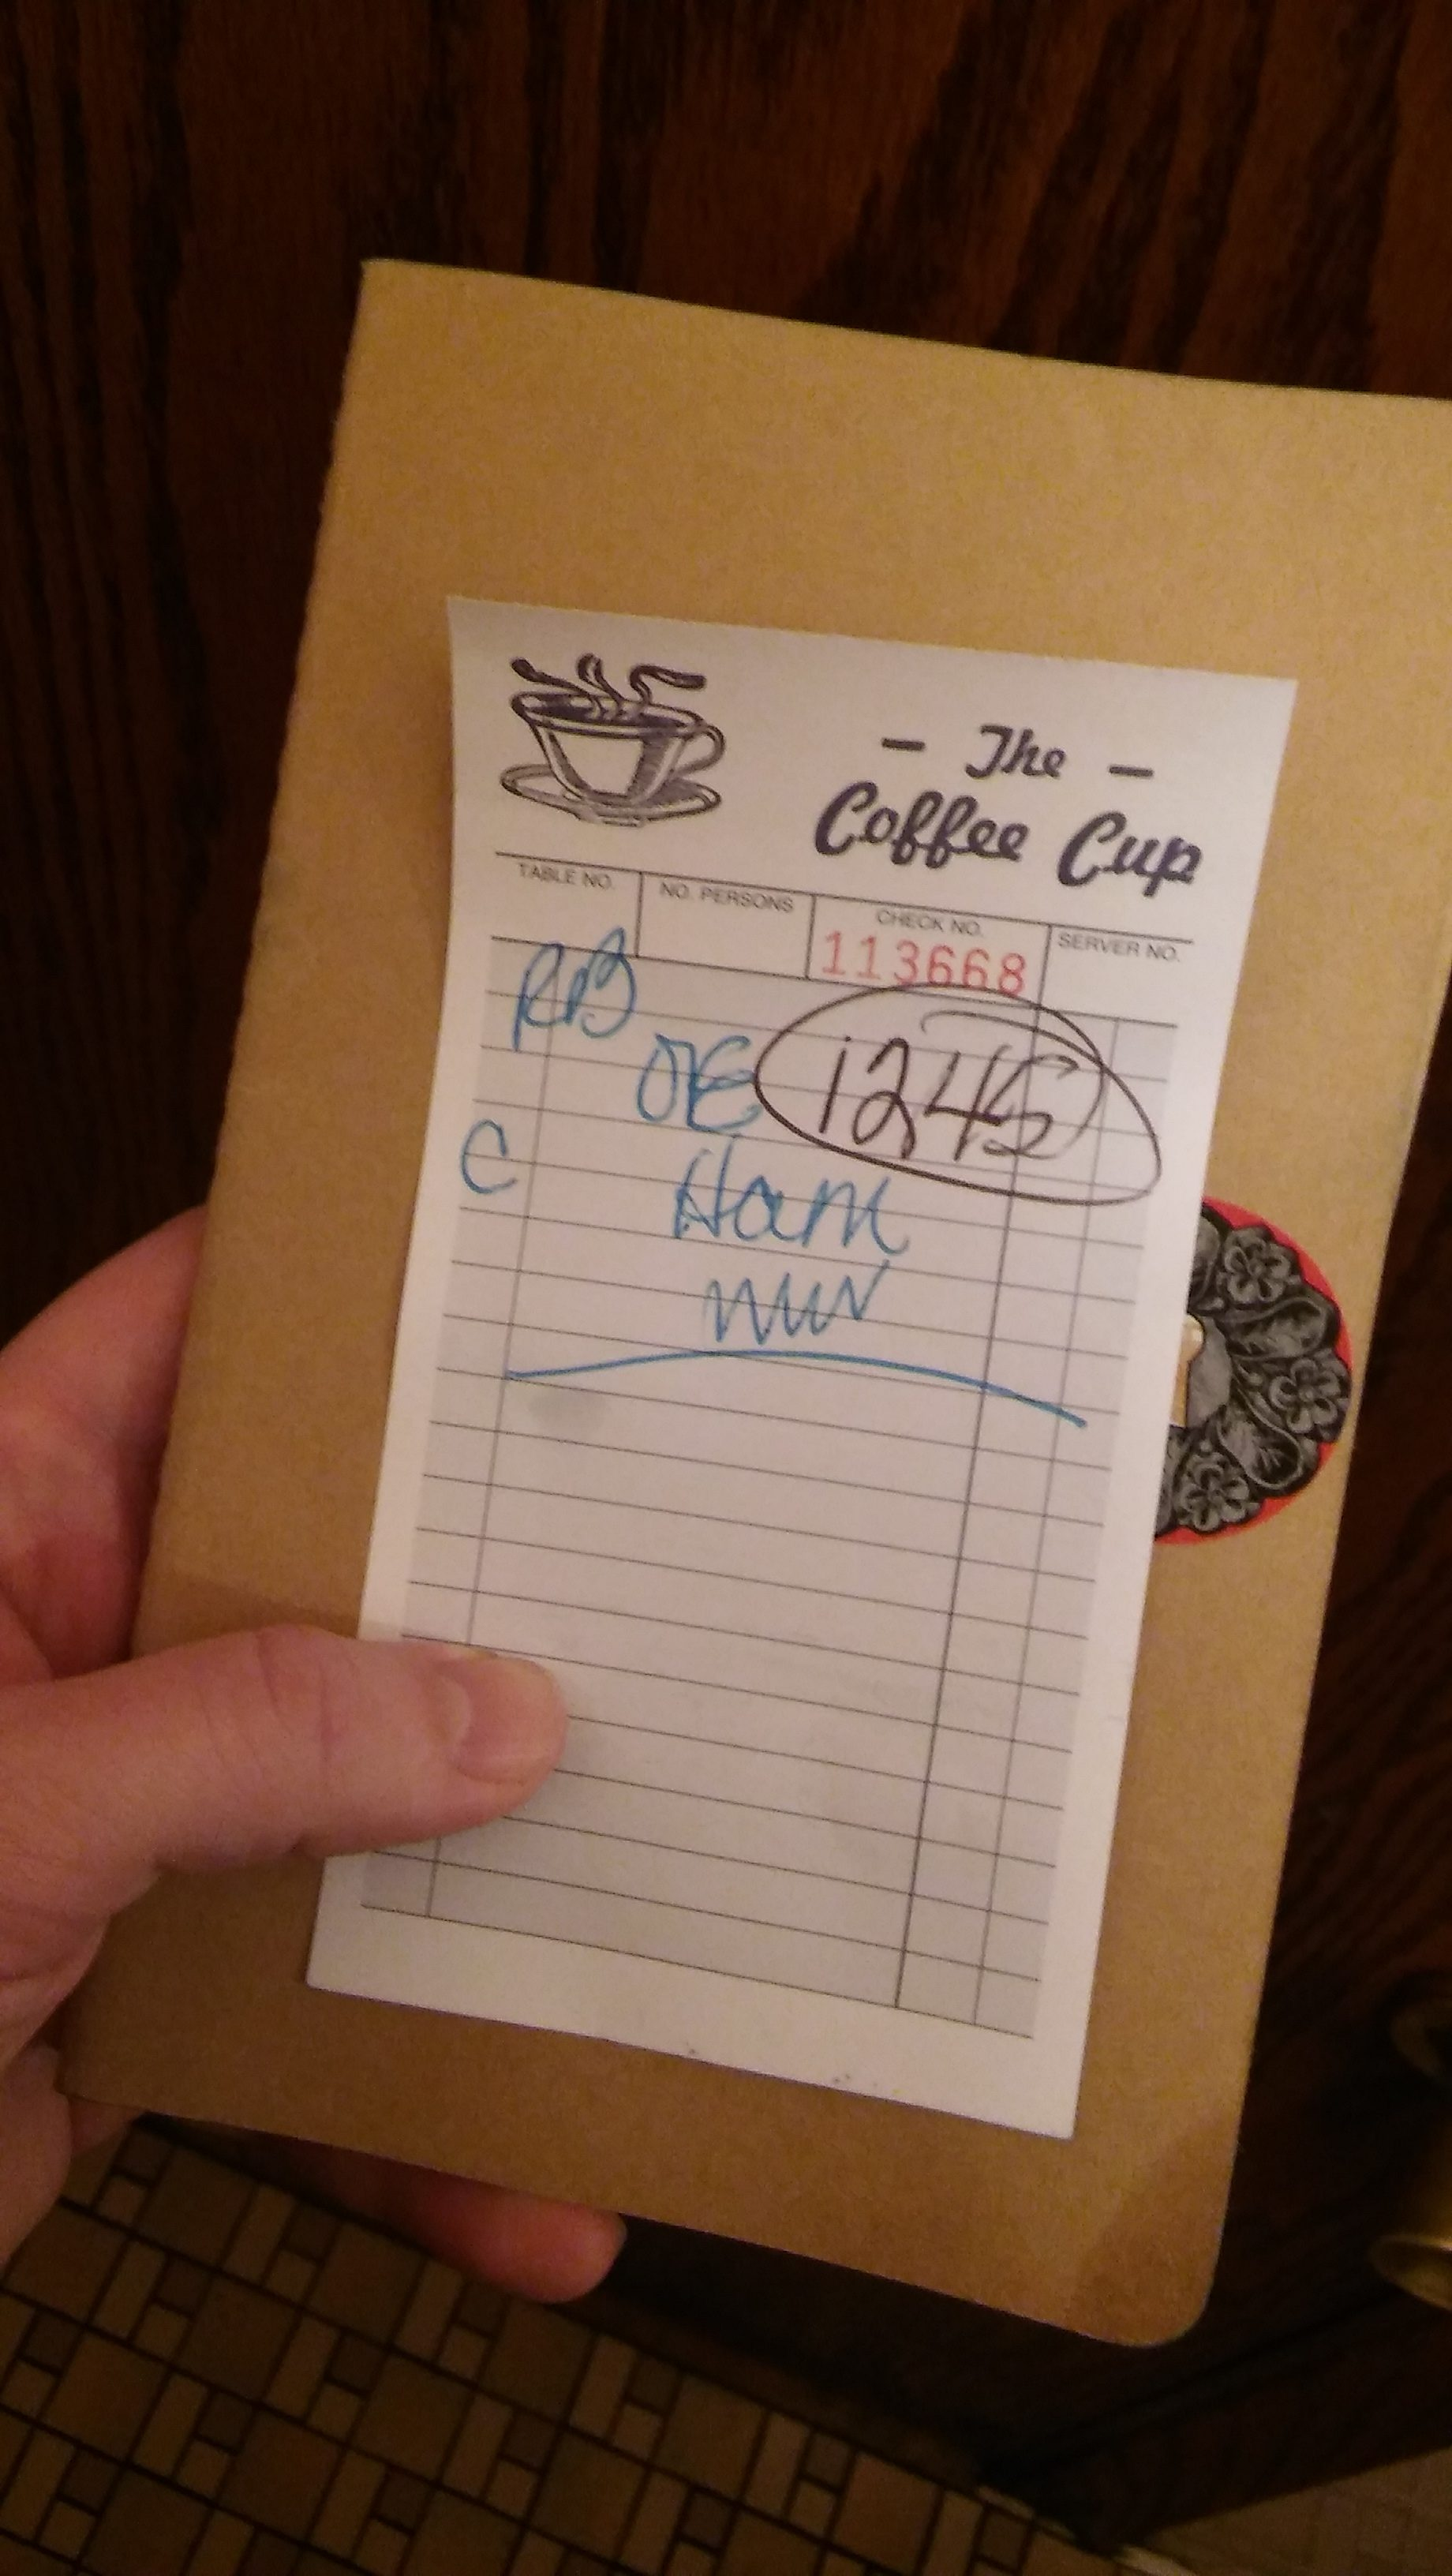 The Coffee Cup bill